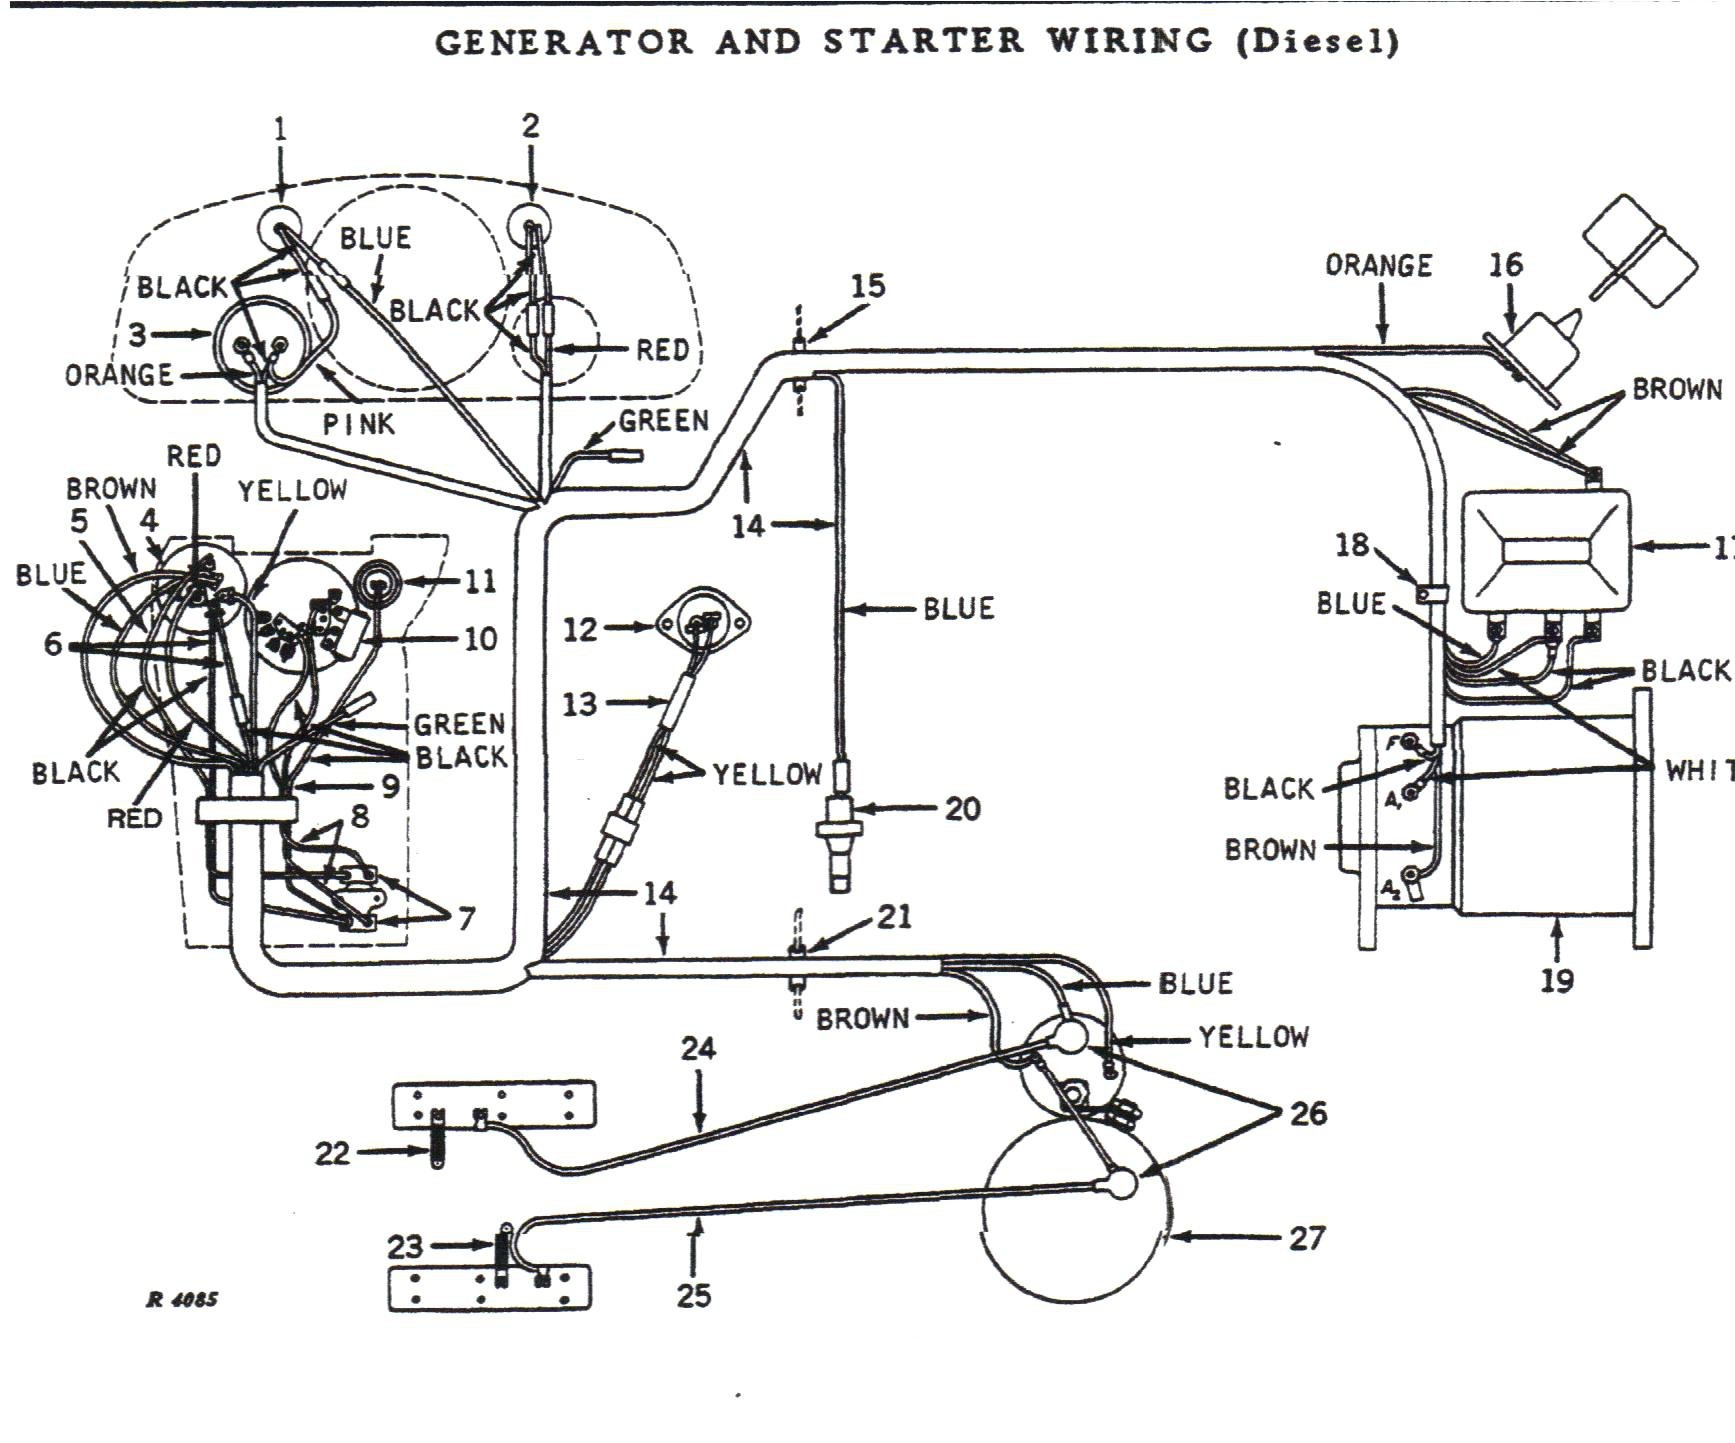 hight resolution of 12 volt hydraulic pump wiring diagram meyer snow plow wiring diagram12 volt hydraulic pump wiring diagram